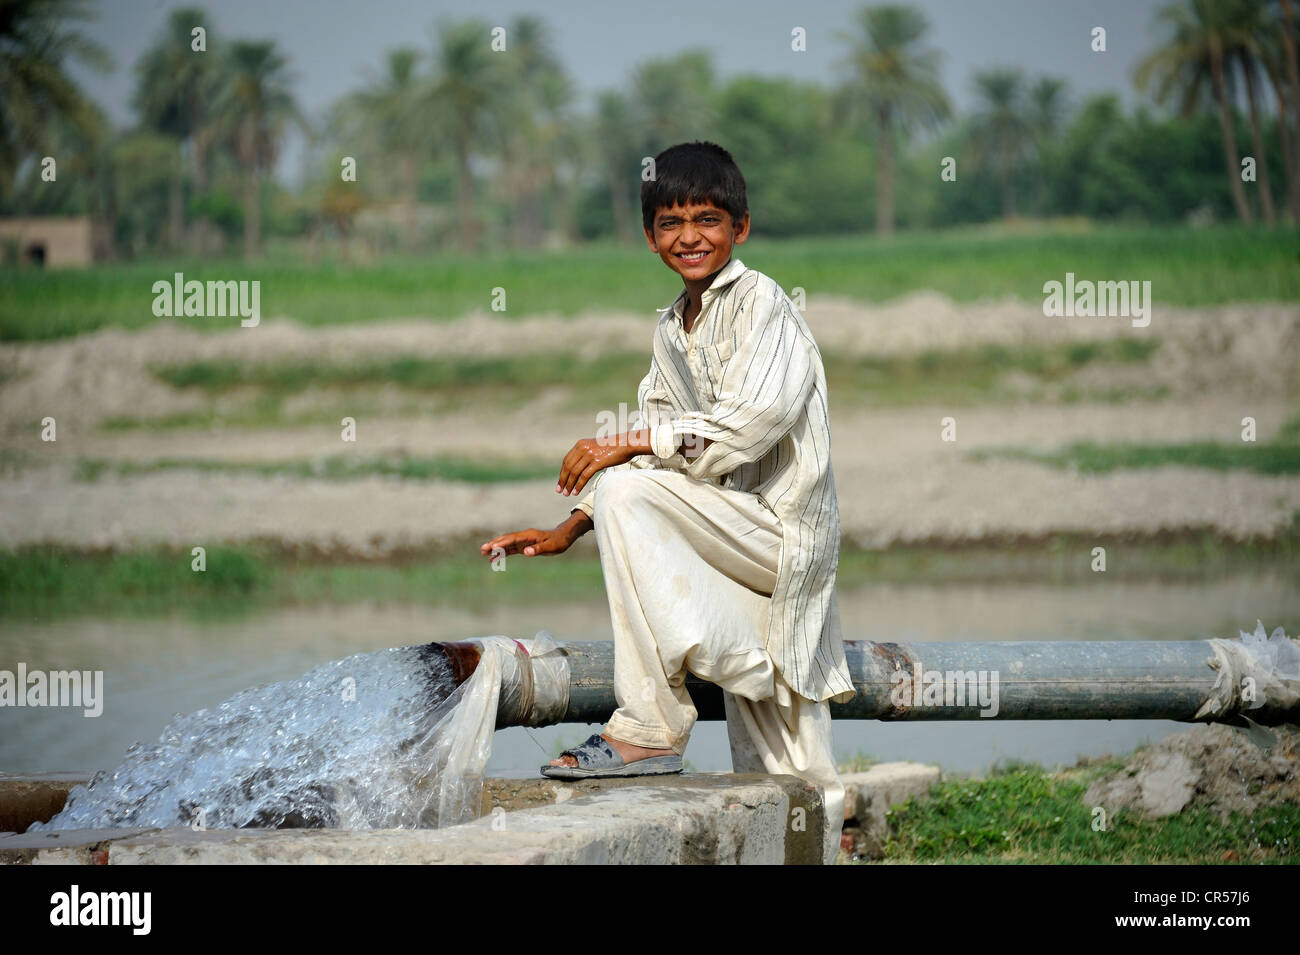 Boy standing at the catchment of a spring that is fed by a water pipe, Basti Lehar Walla village, Punjab, Pakistan, - Stock Image